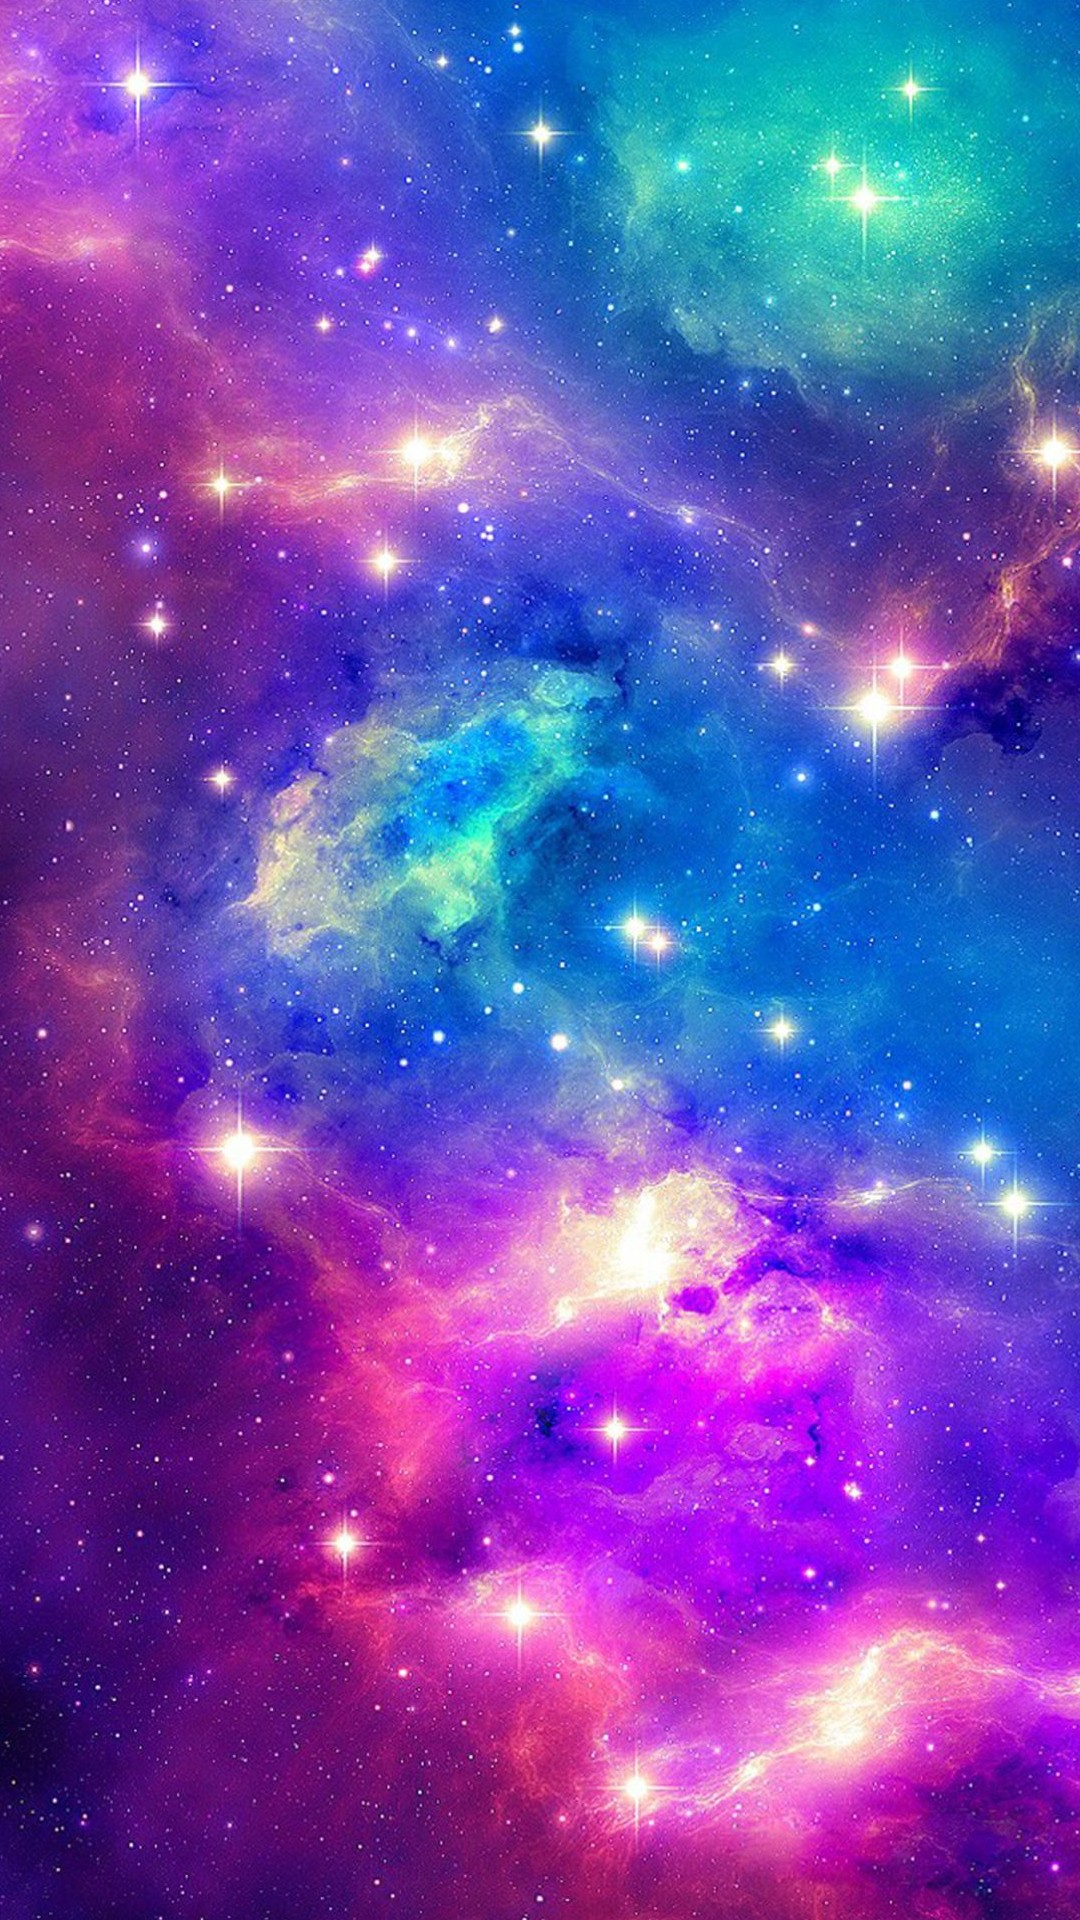 Colorful Galaxy Tumblr Wallpaper (page 2) - Pics about space